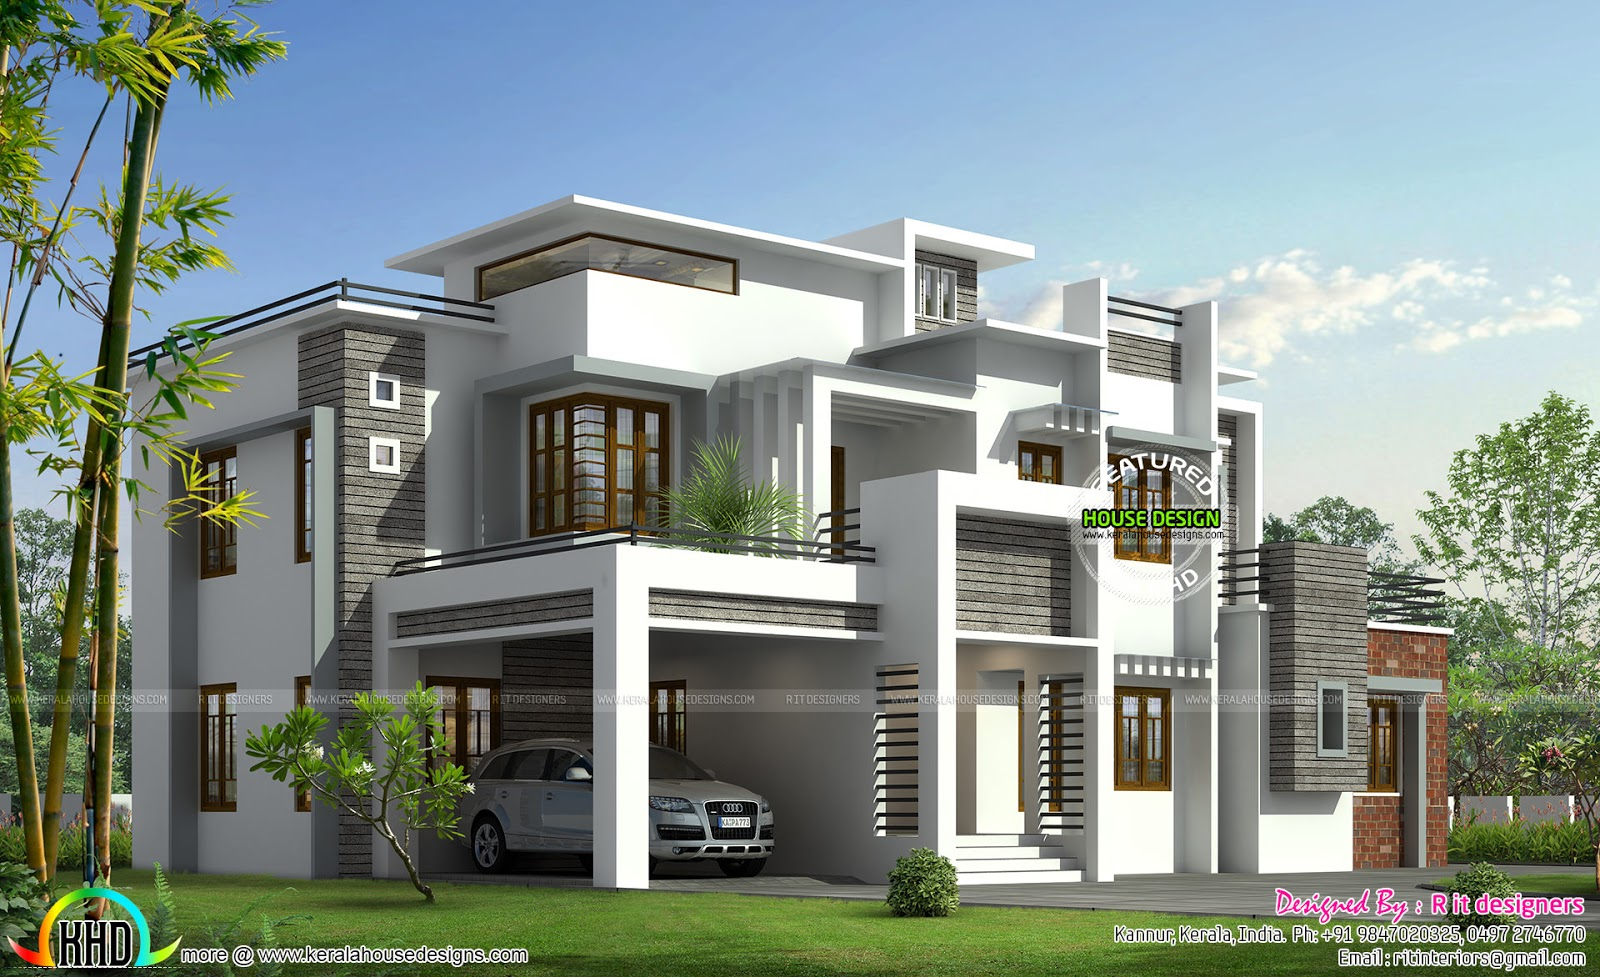 Box model contemporary house kerala home design and for Modern house model